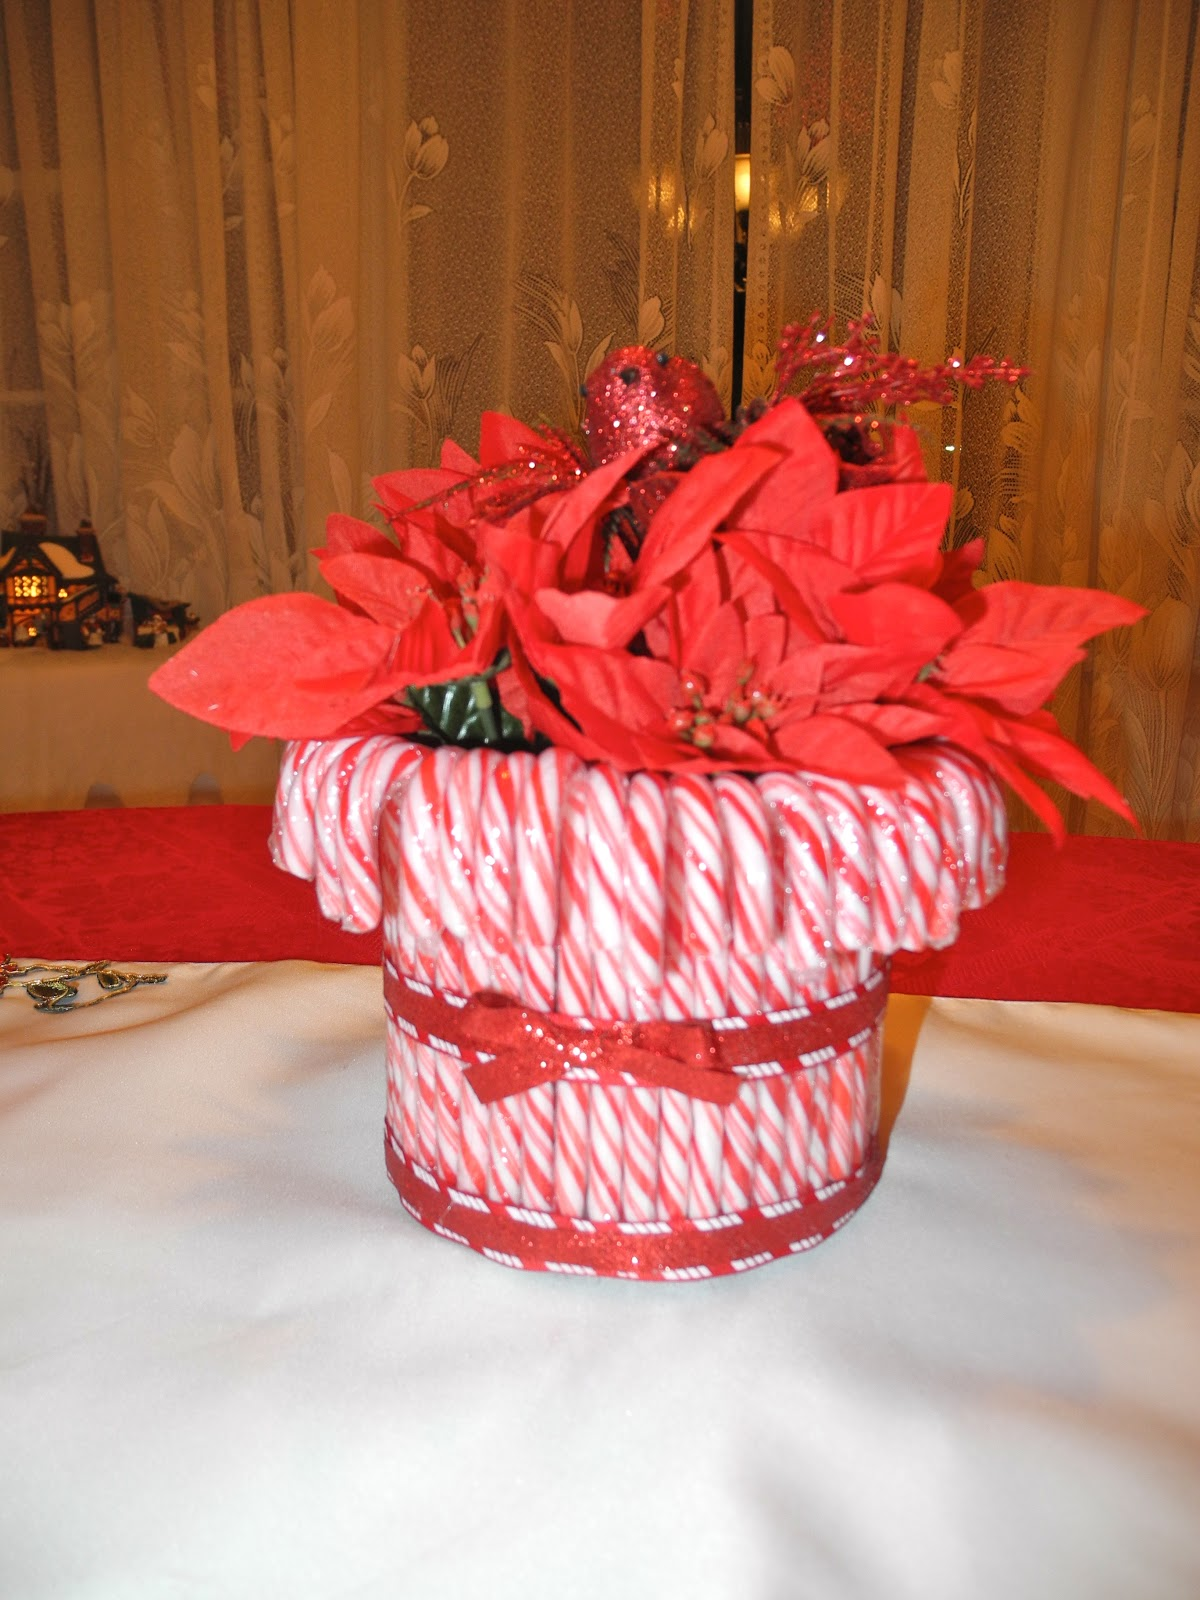 Candy cane centerpiece making memories